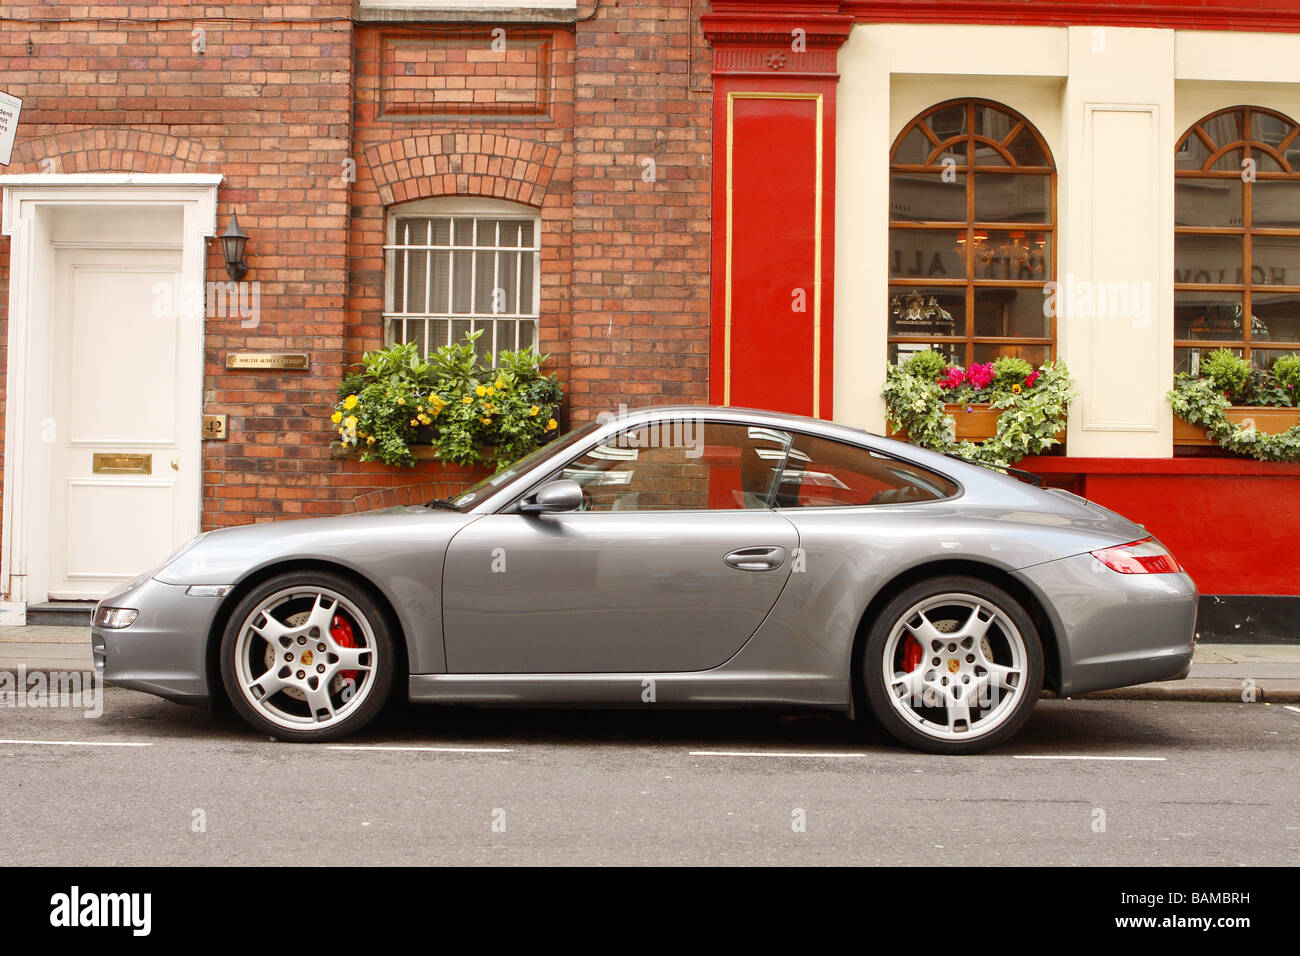 Porsche Carrera S London Luxus-Sportwagen in der exklusiven Adams Zeile Straße in Mayfair London geparkt Stockbild